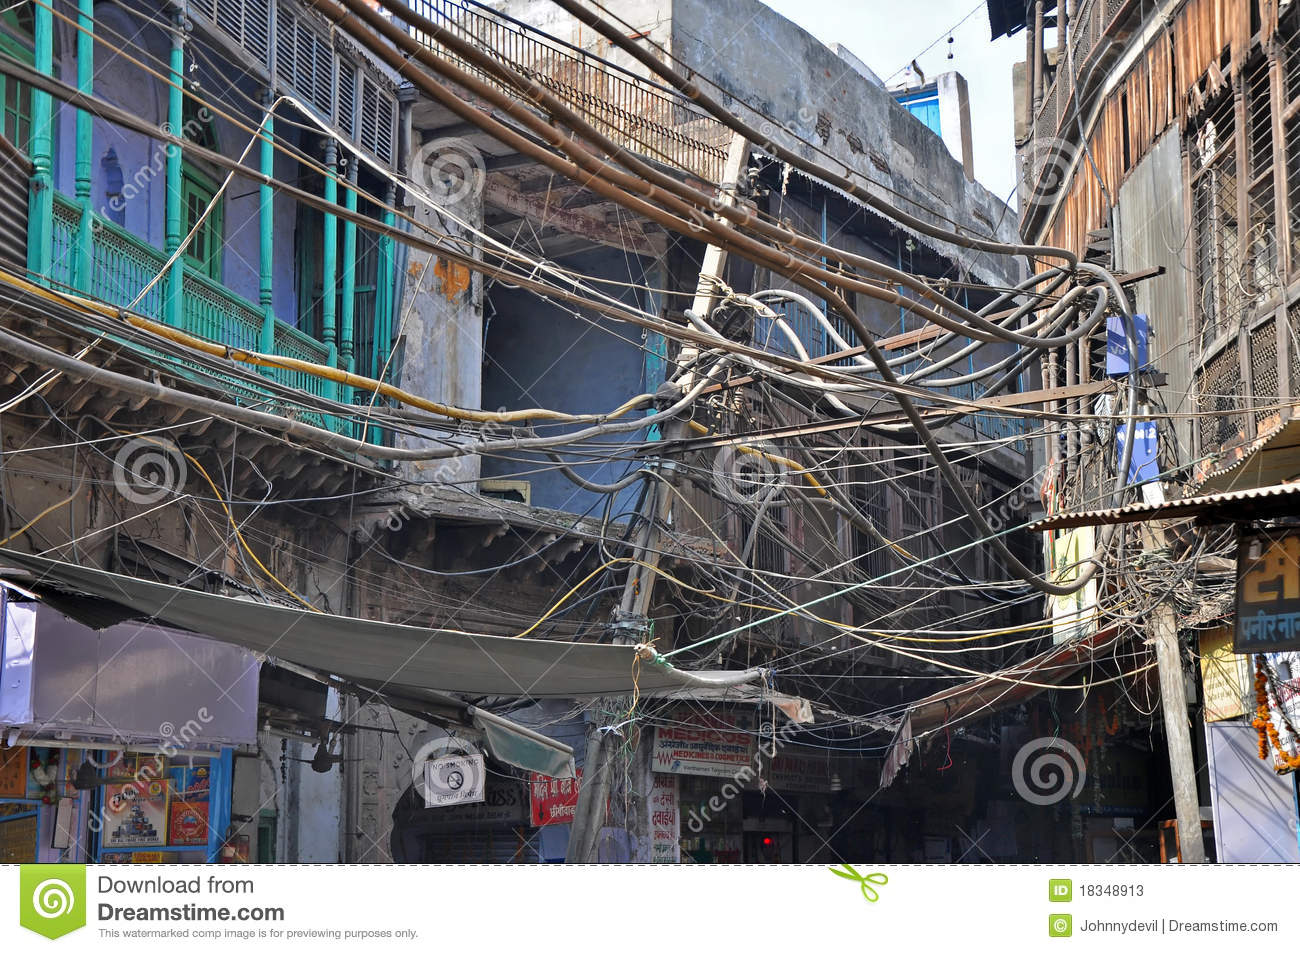 indian street electrical wiring stock photo image of hangs supply rh dreamstime com India Internet Wiring Utility Mess of Wires India